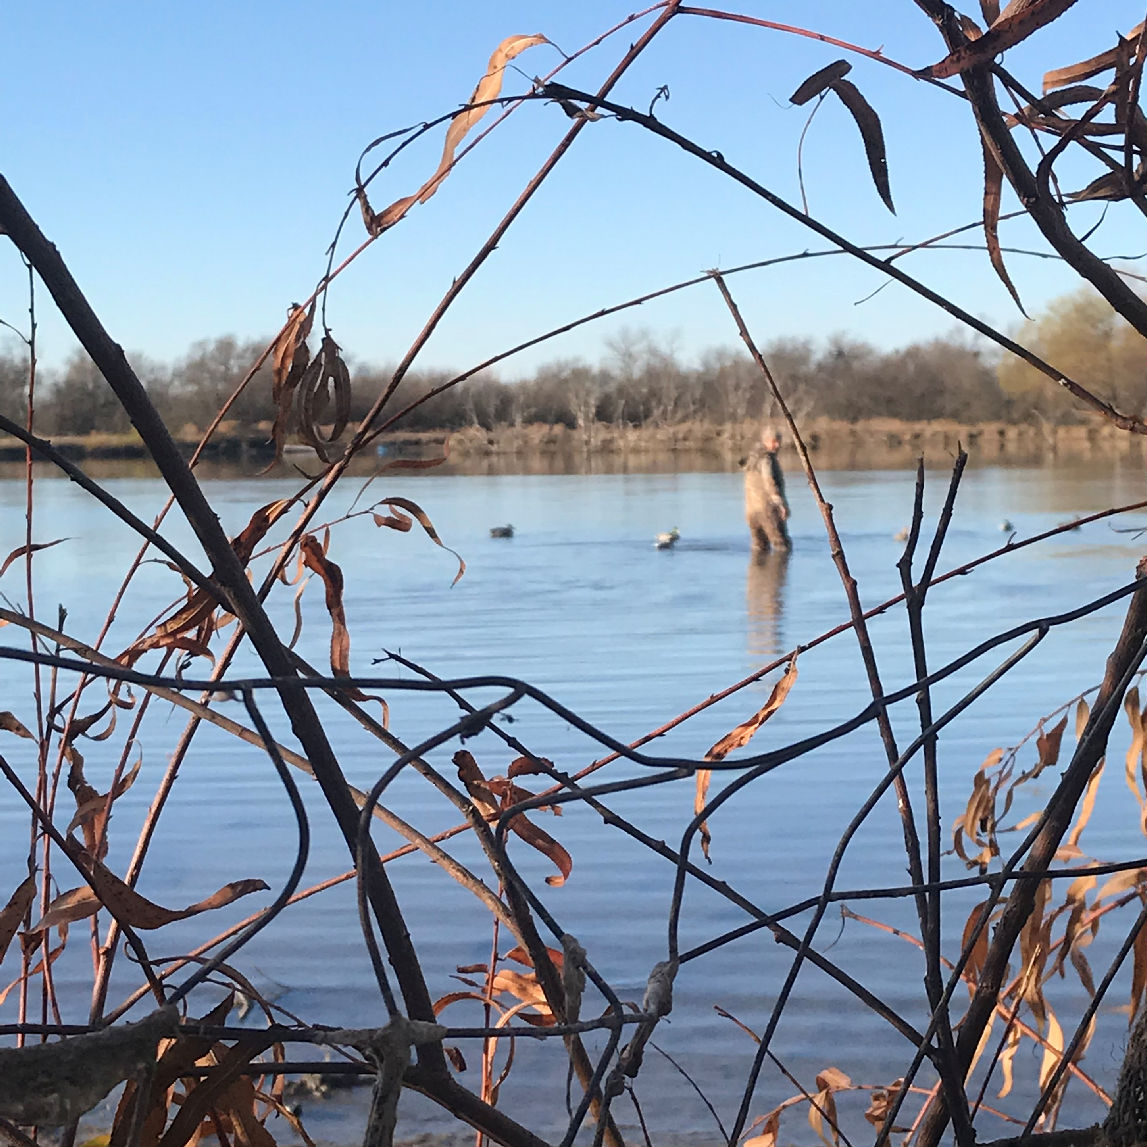 North Texas Duck Hunting Guide - North Texas Waterfowl